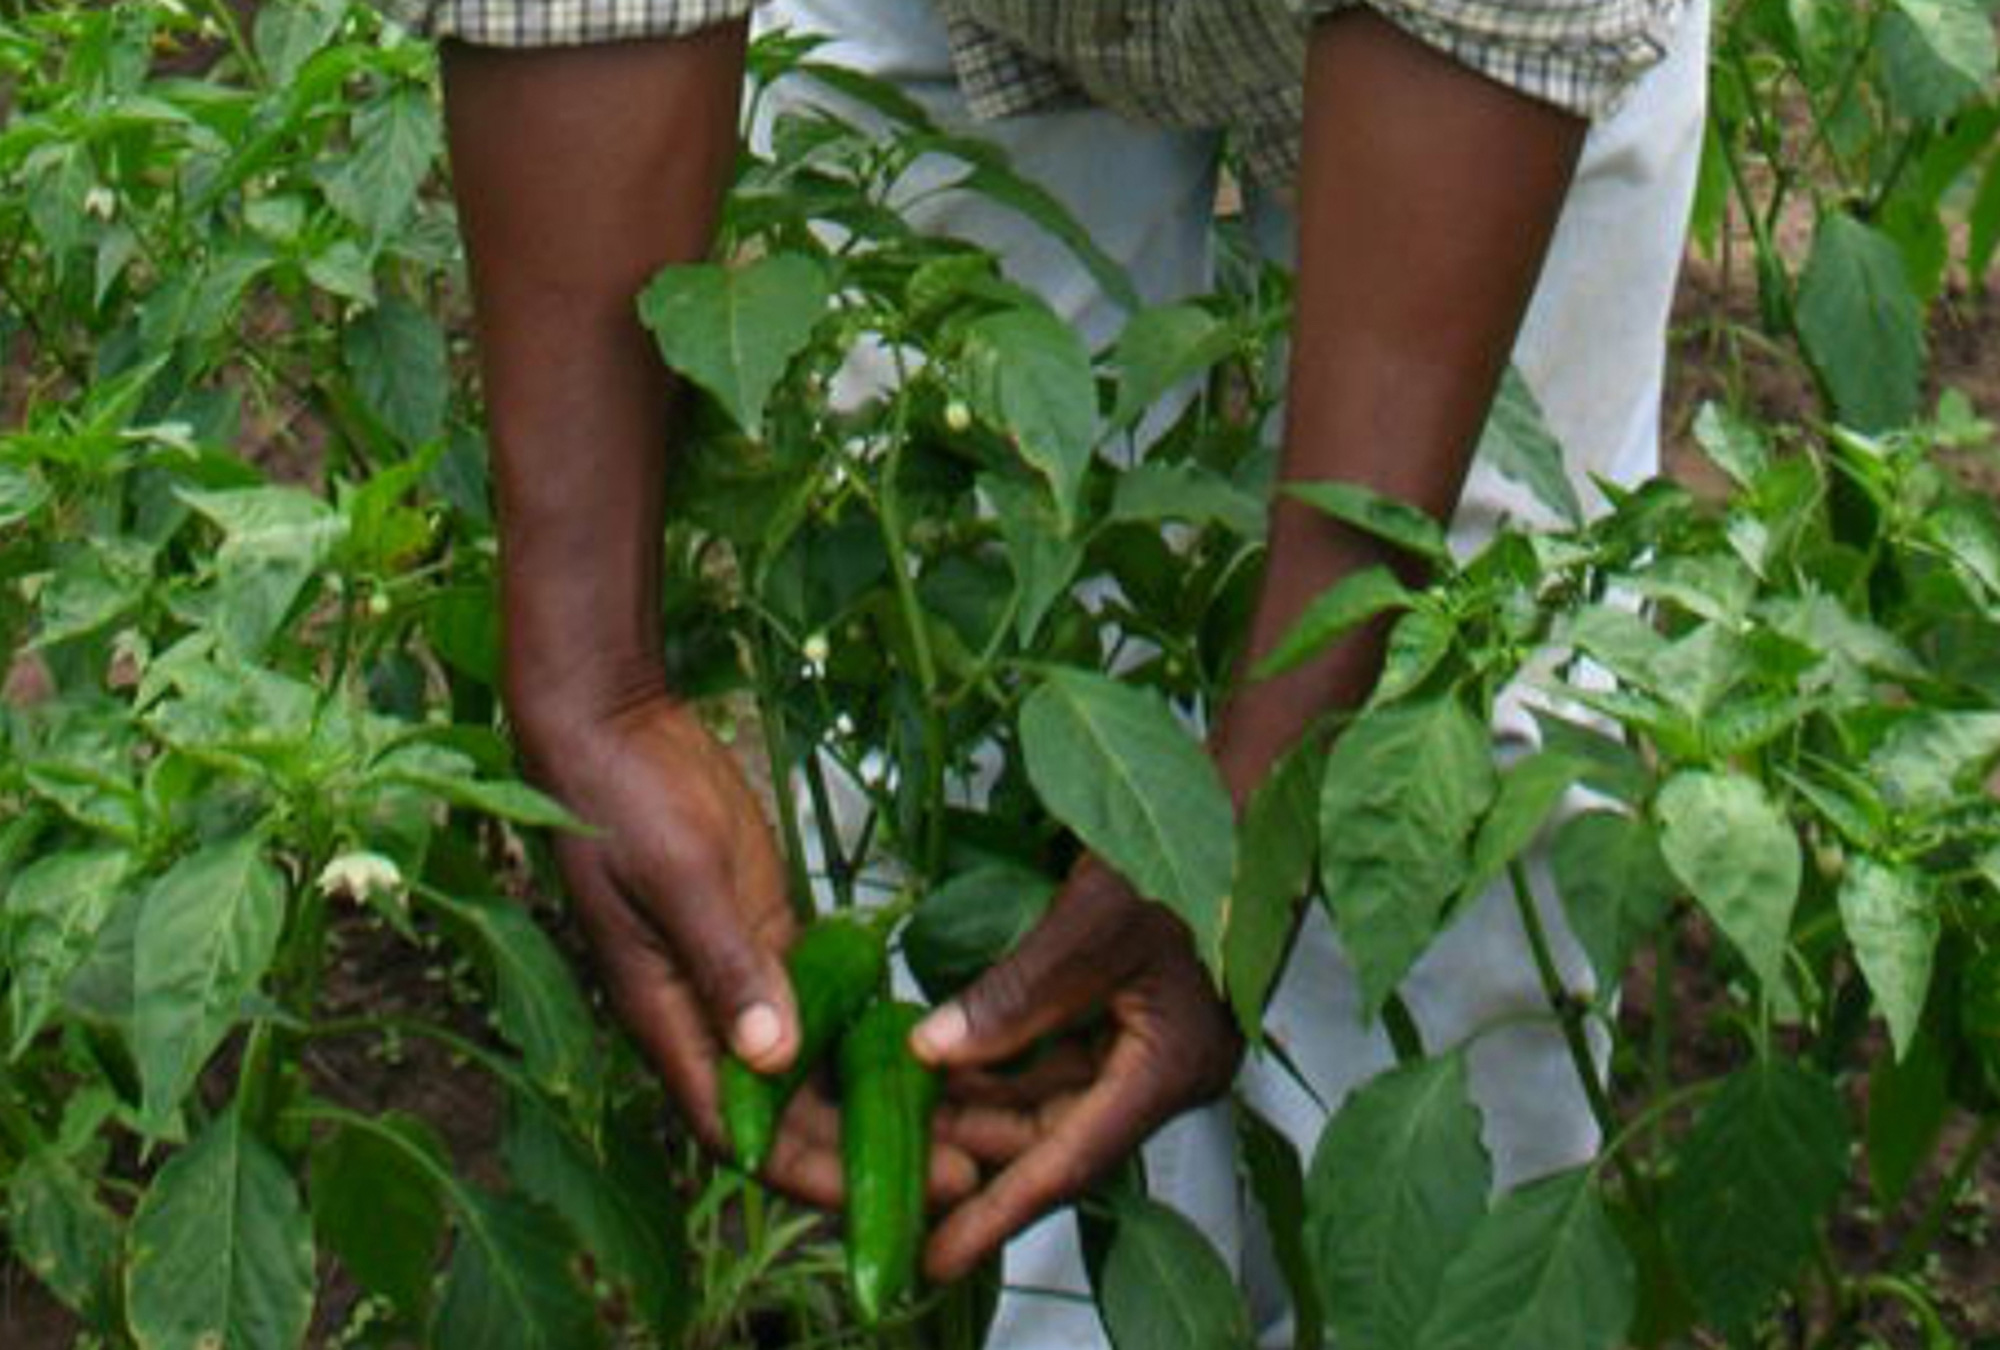 A paprika farmer inspecting his pepper crop in Malawi.